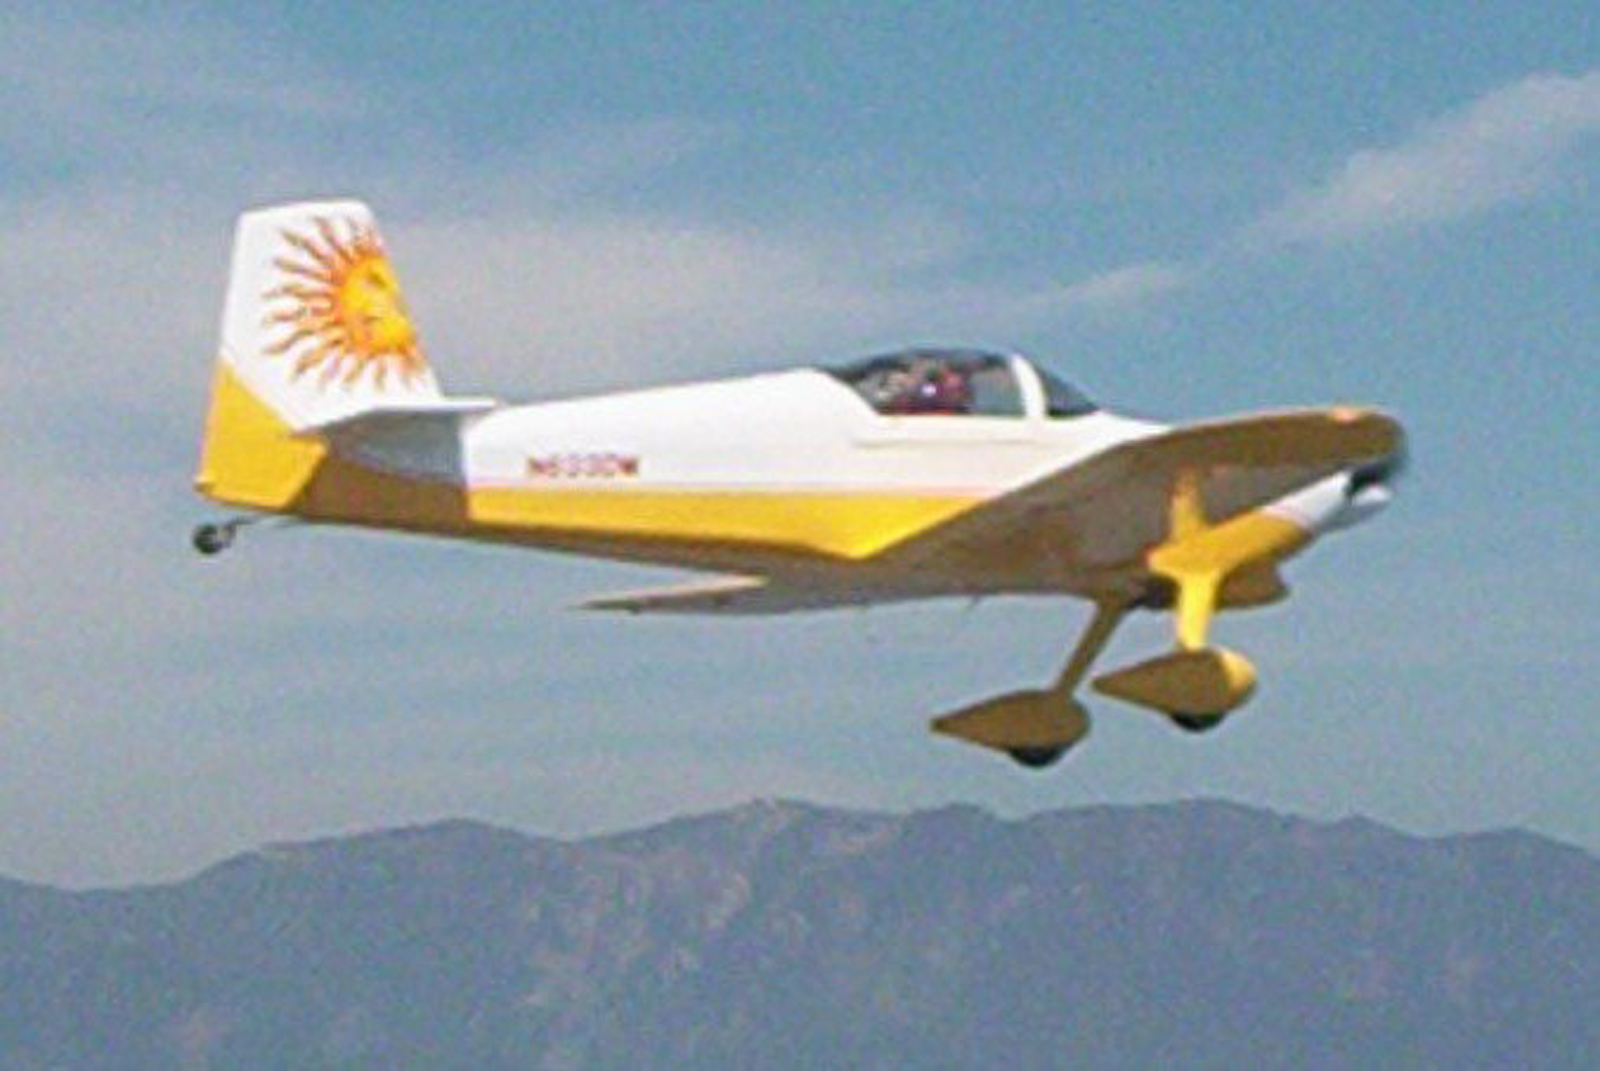 Flying an Experimental RV-6A